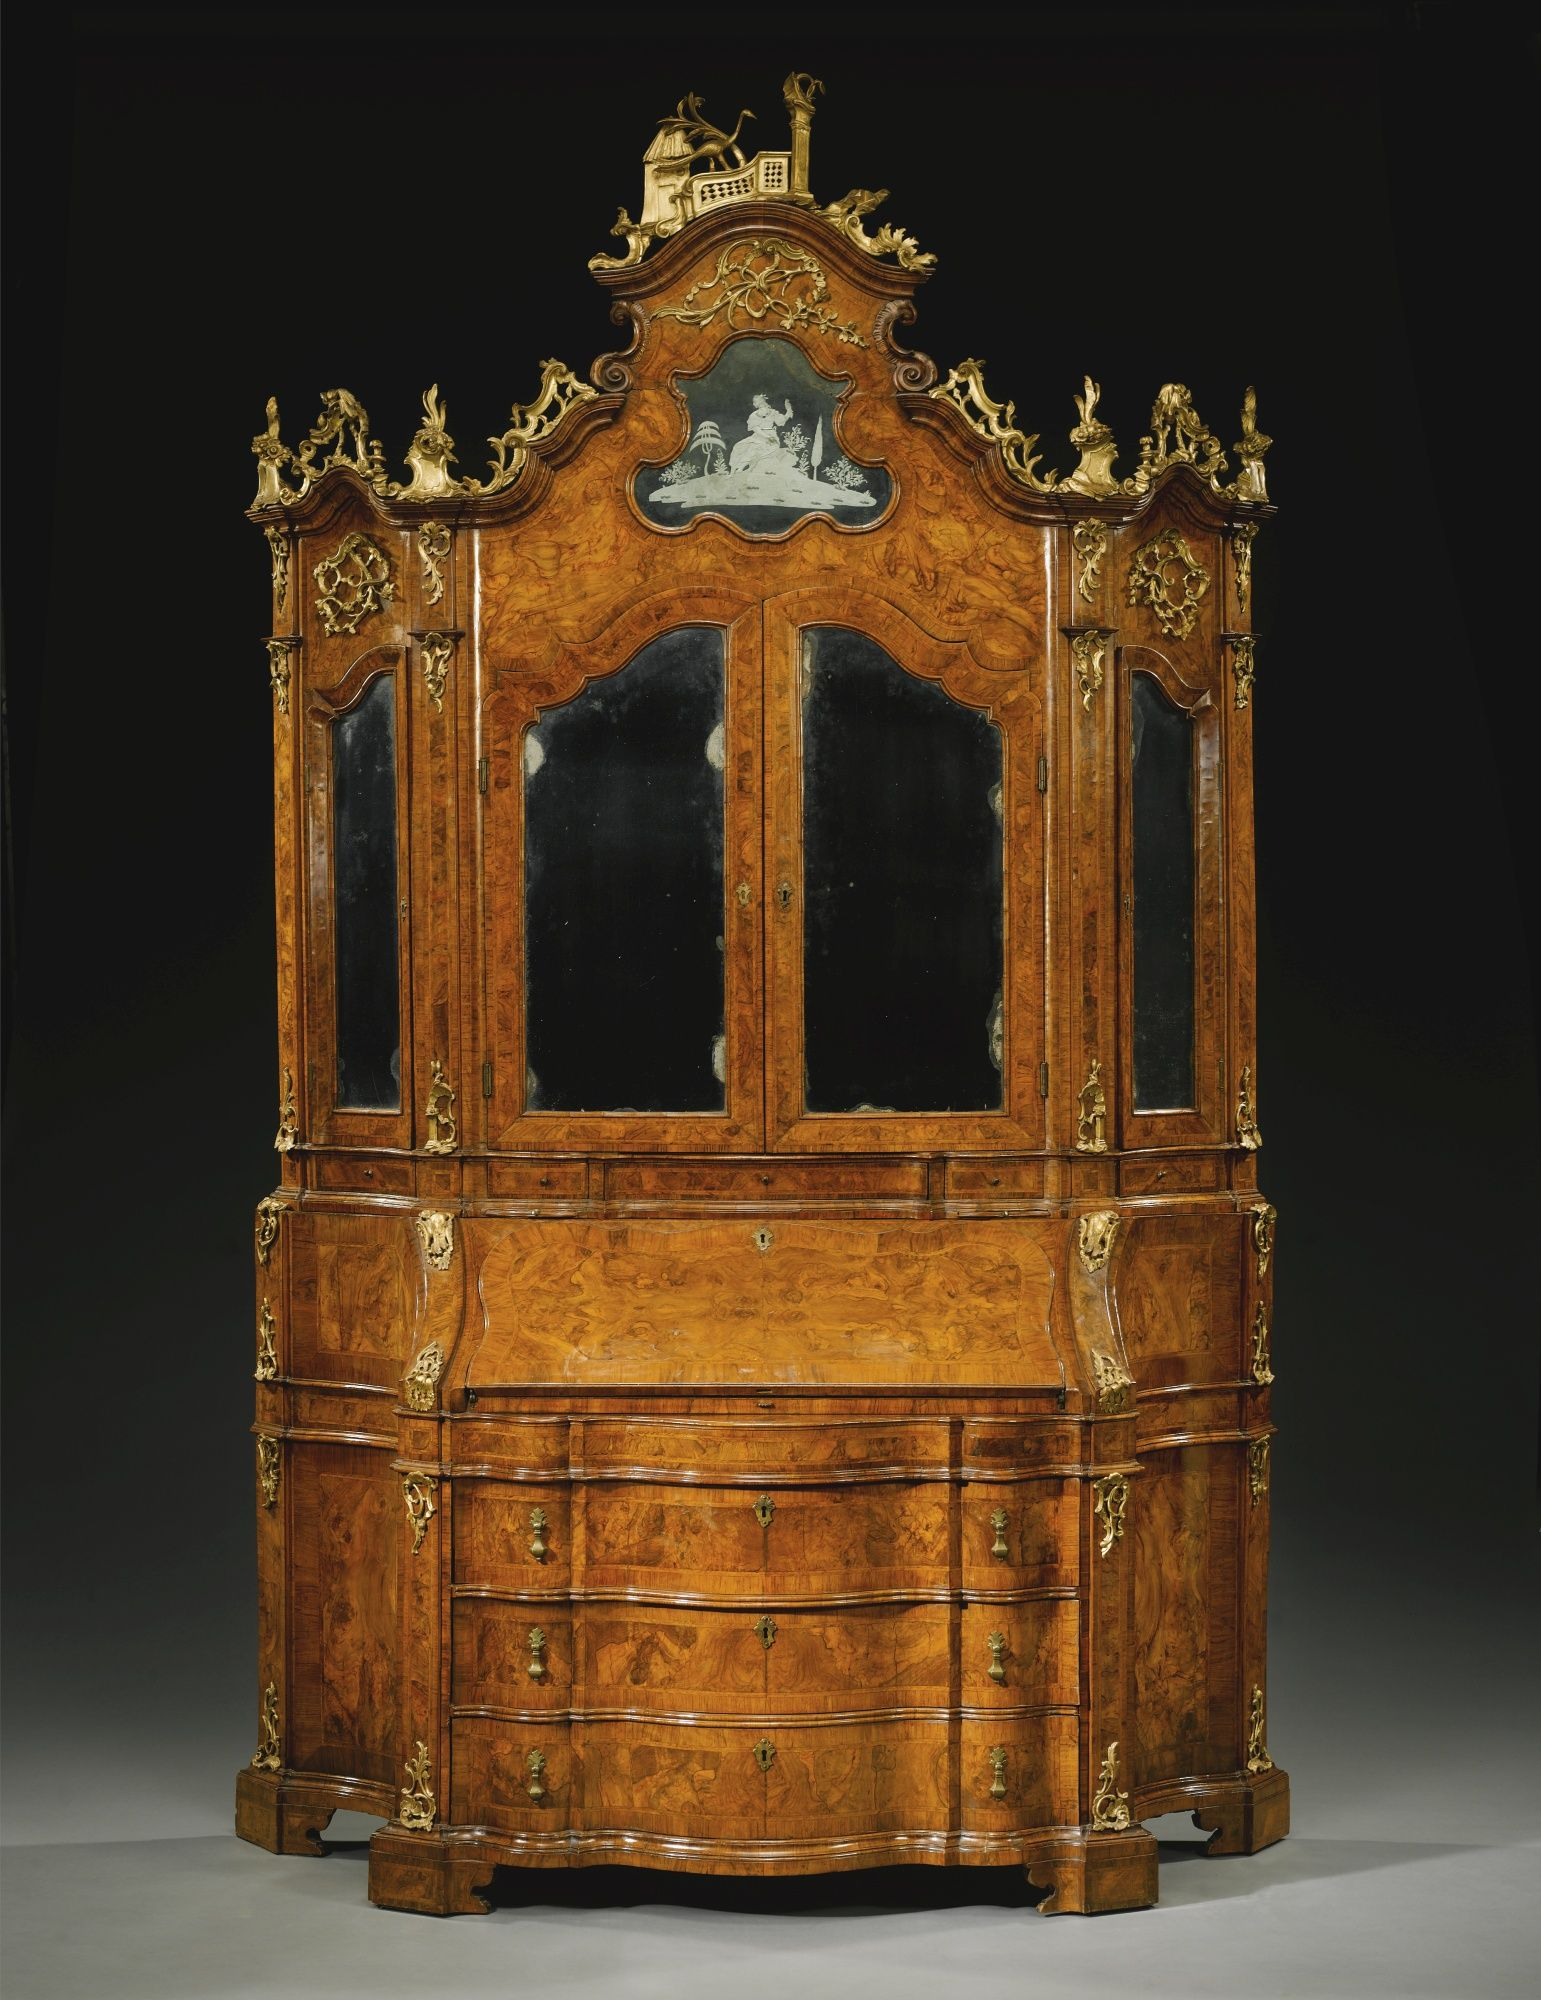 Muebles Italianos Clasicos An Italian Walnut Burr Walnut And Parcel Gilt Bureau